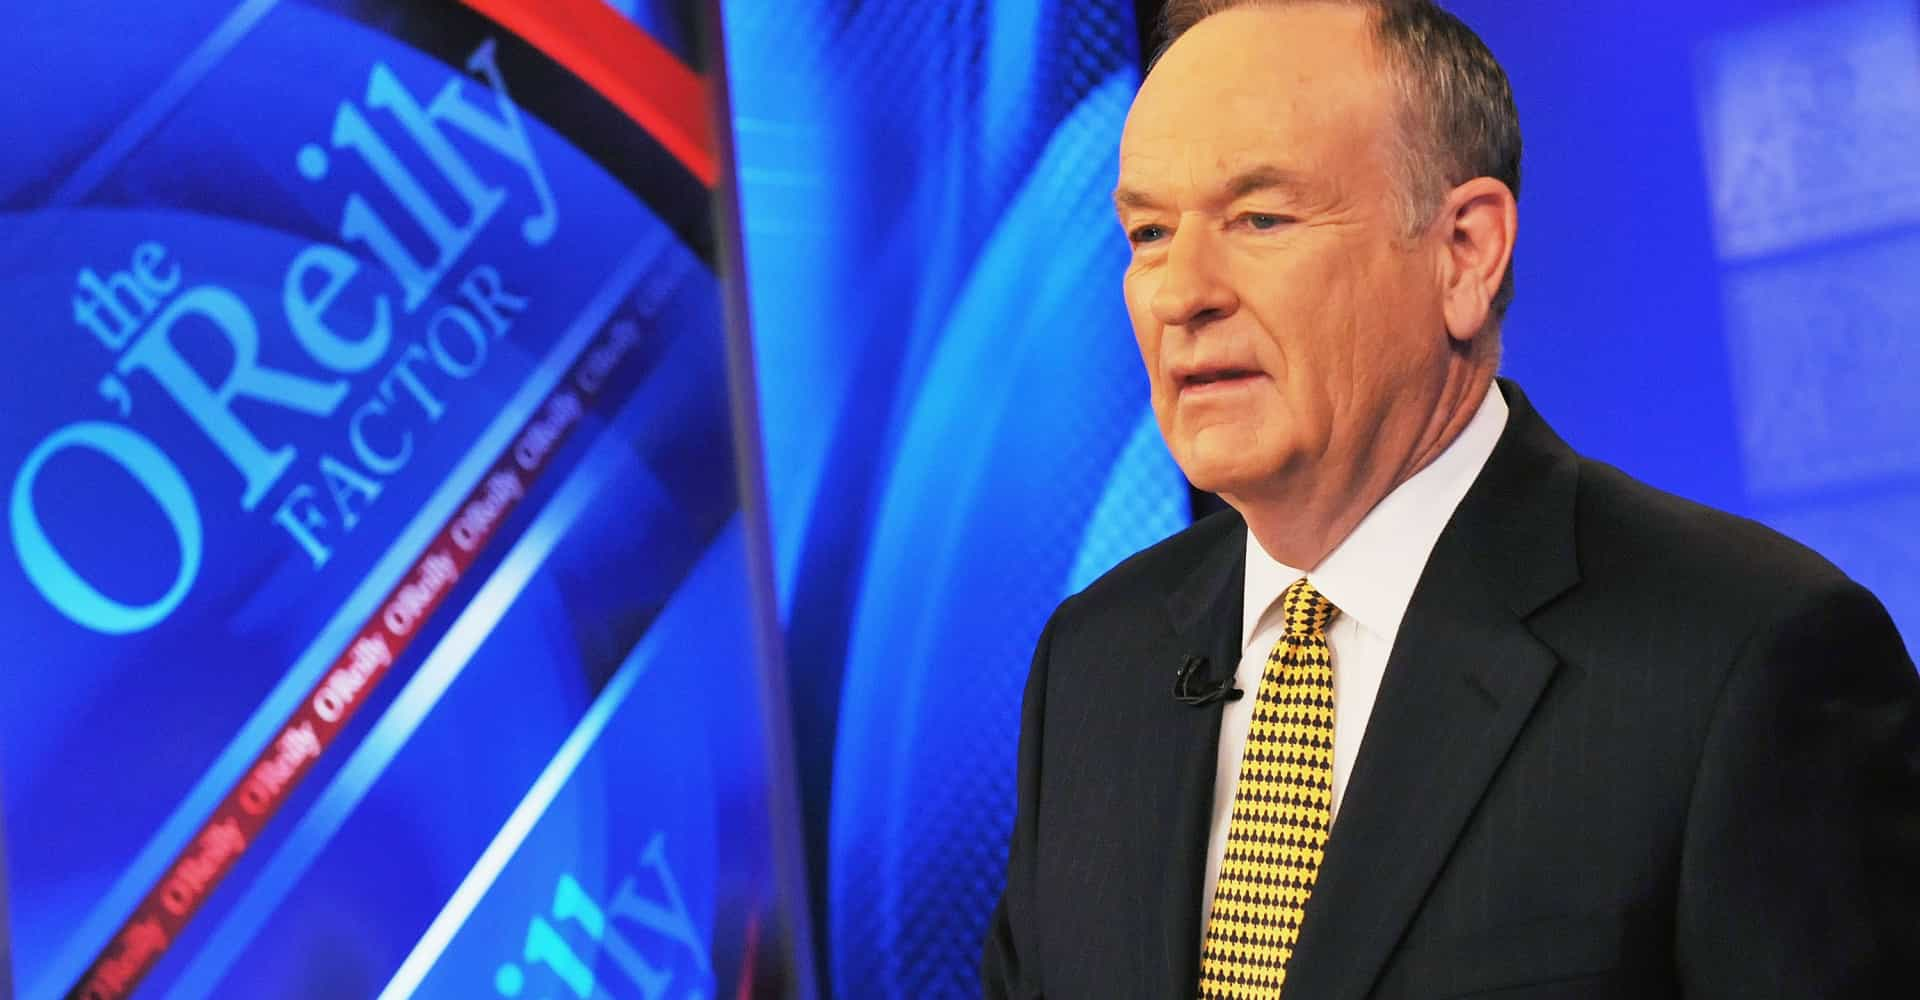 Bill O'Reilly discusses his return to cable news